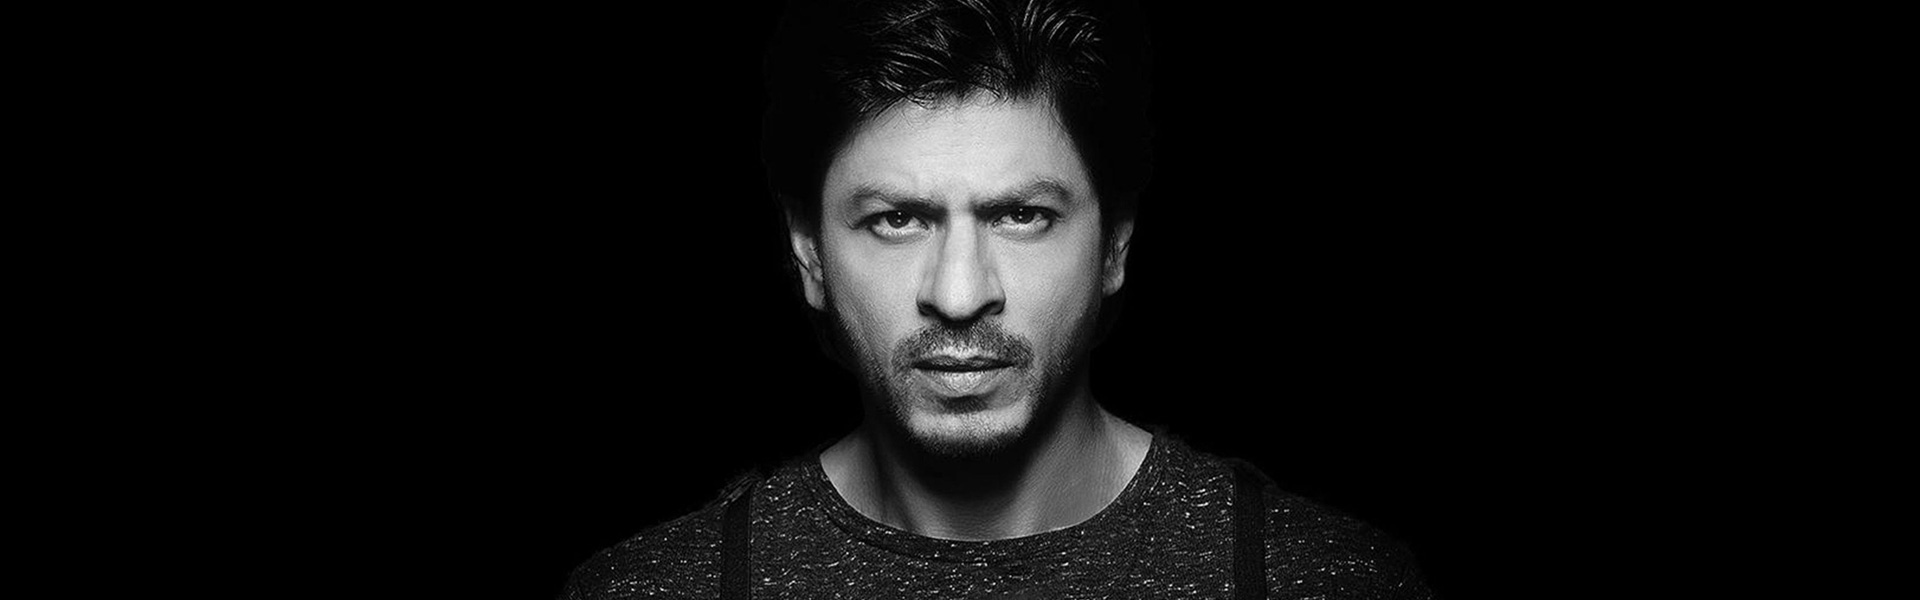 Shahrukh Khan Actor, Model, Producer, TV Host, Father, Son, Husband, Brother, Mentor